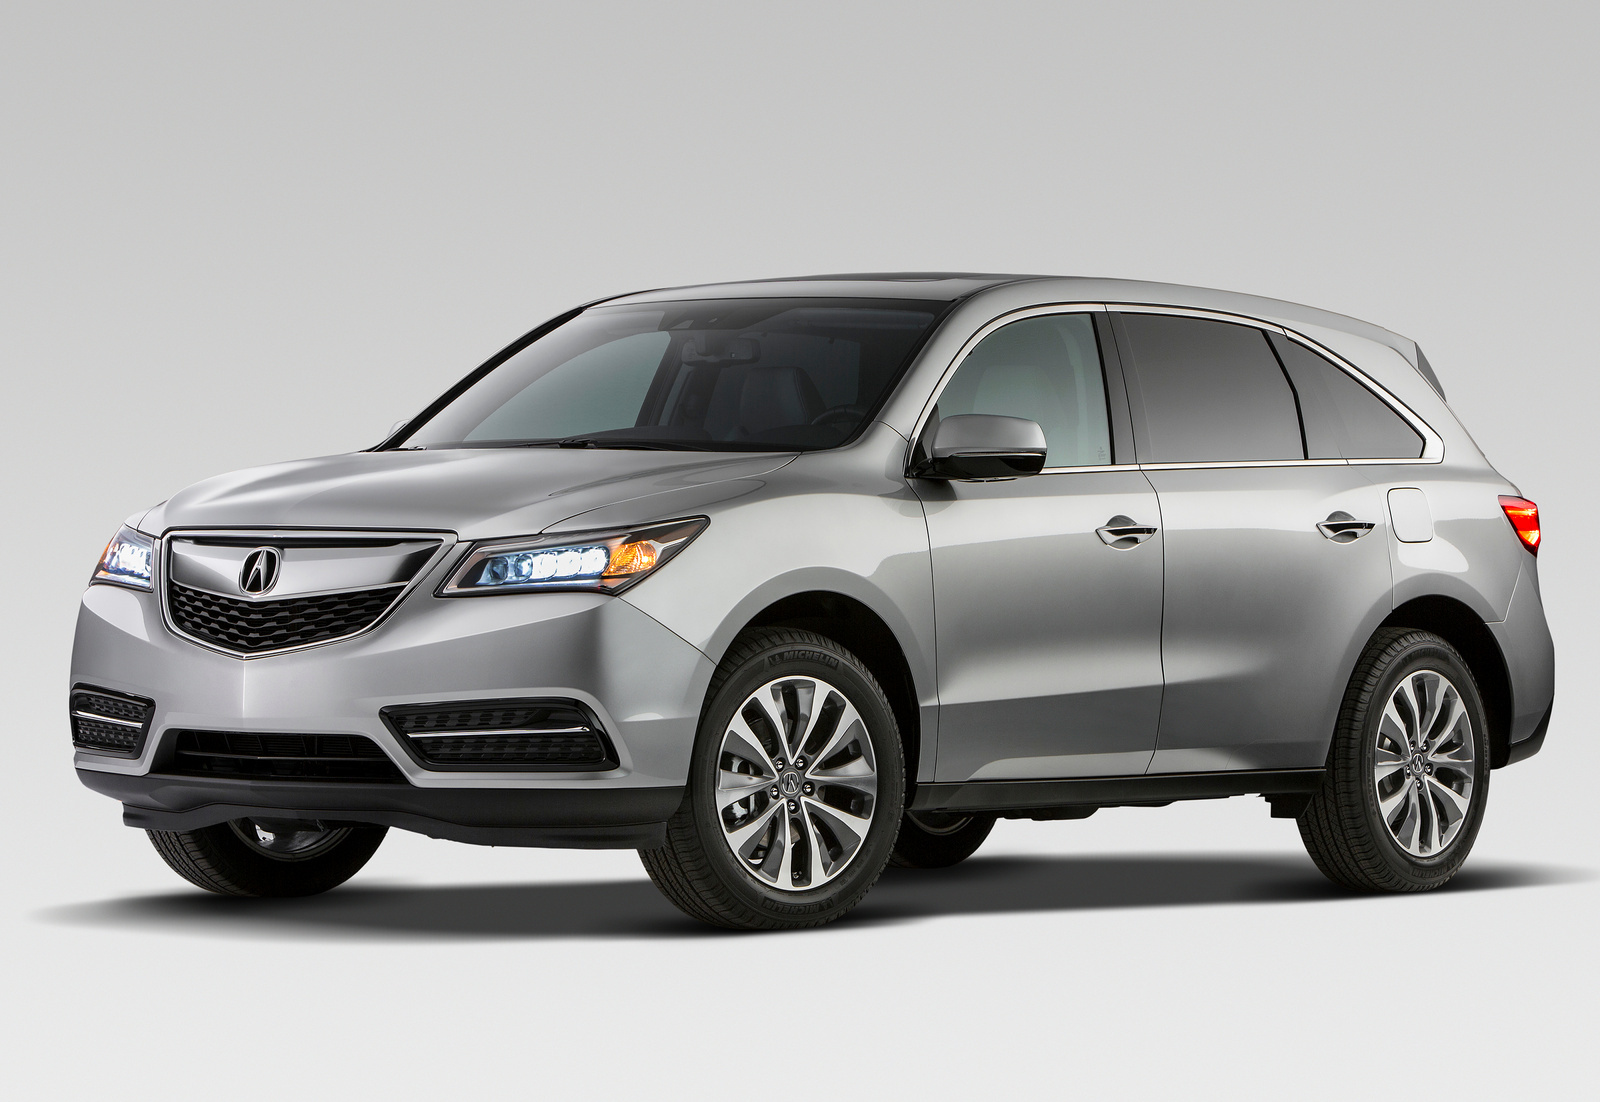 2014 Acura Mdx Test Drive Review Cargurus